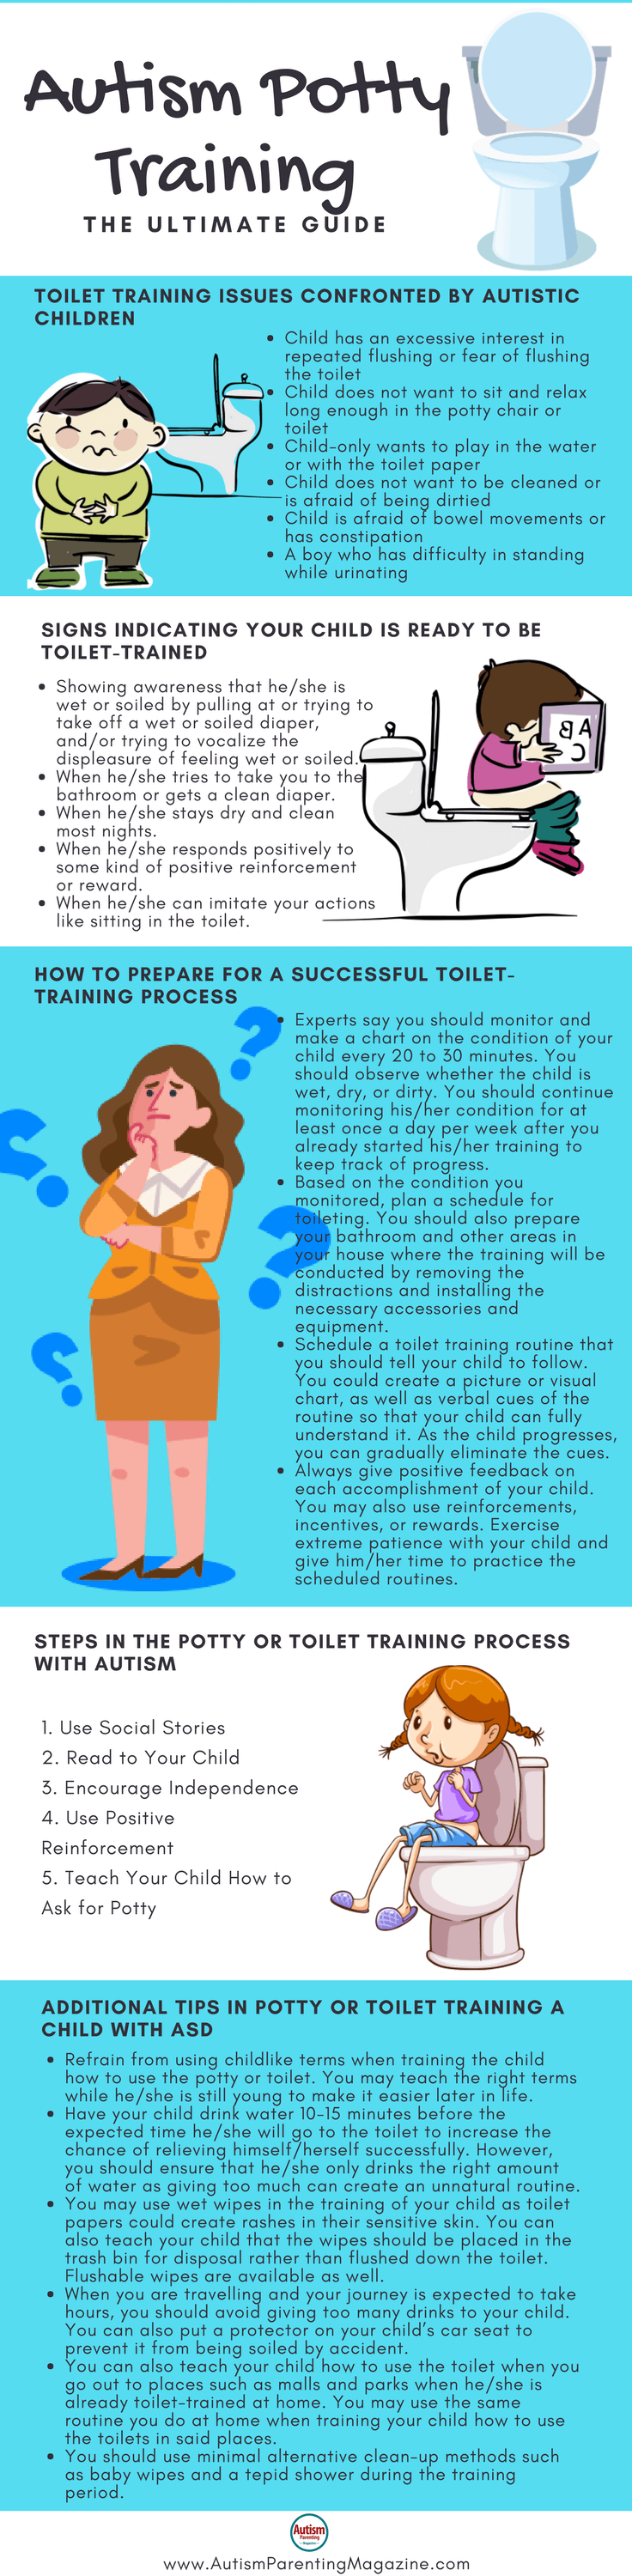 autism-potty-training-infographic-galleryr